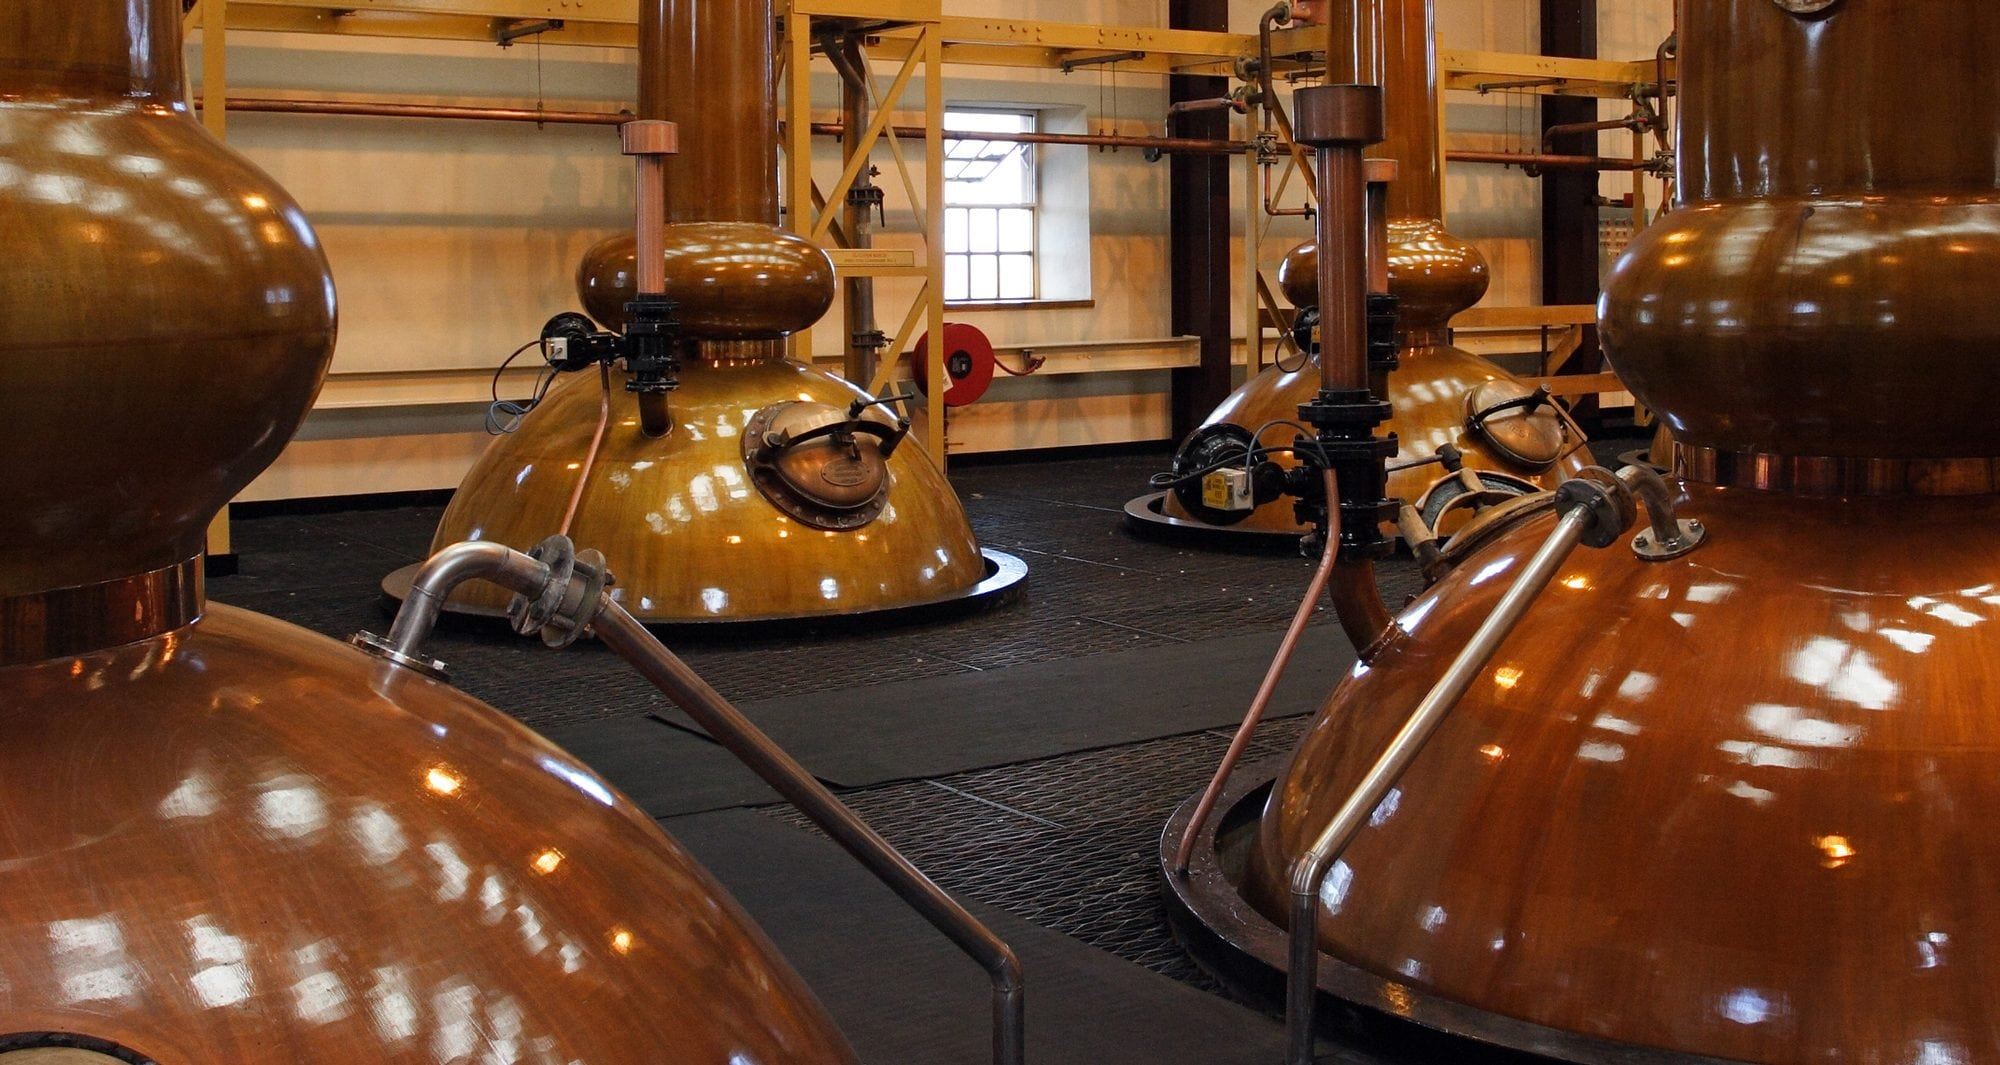 Brass whisky stills